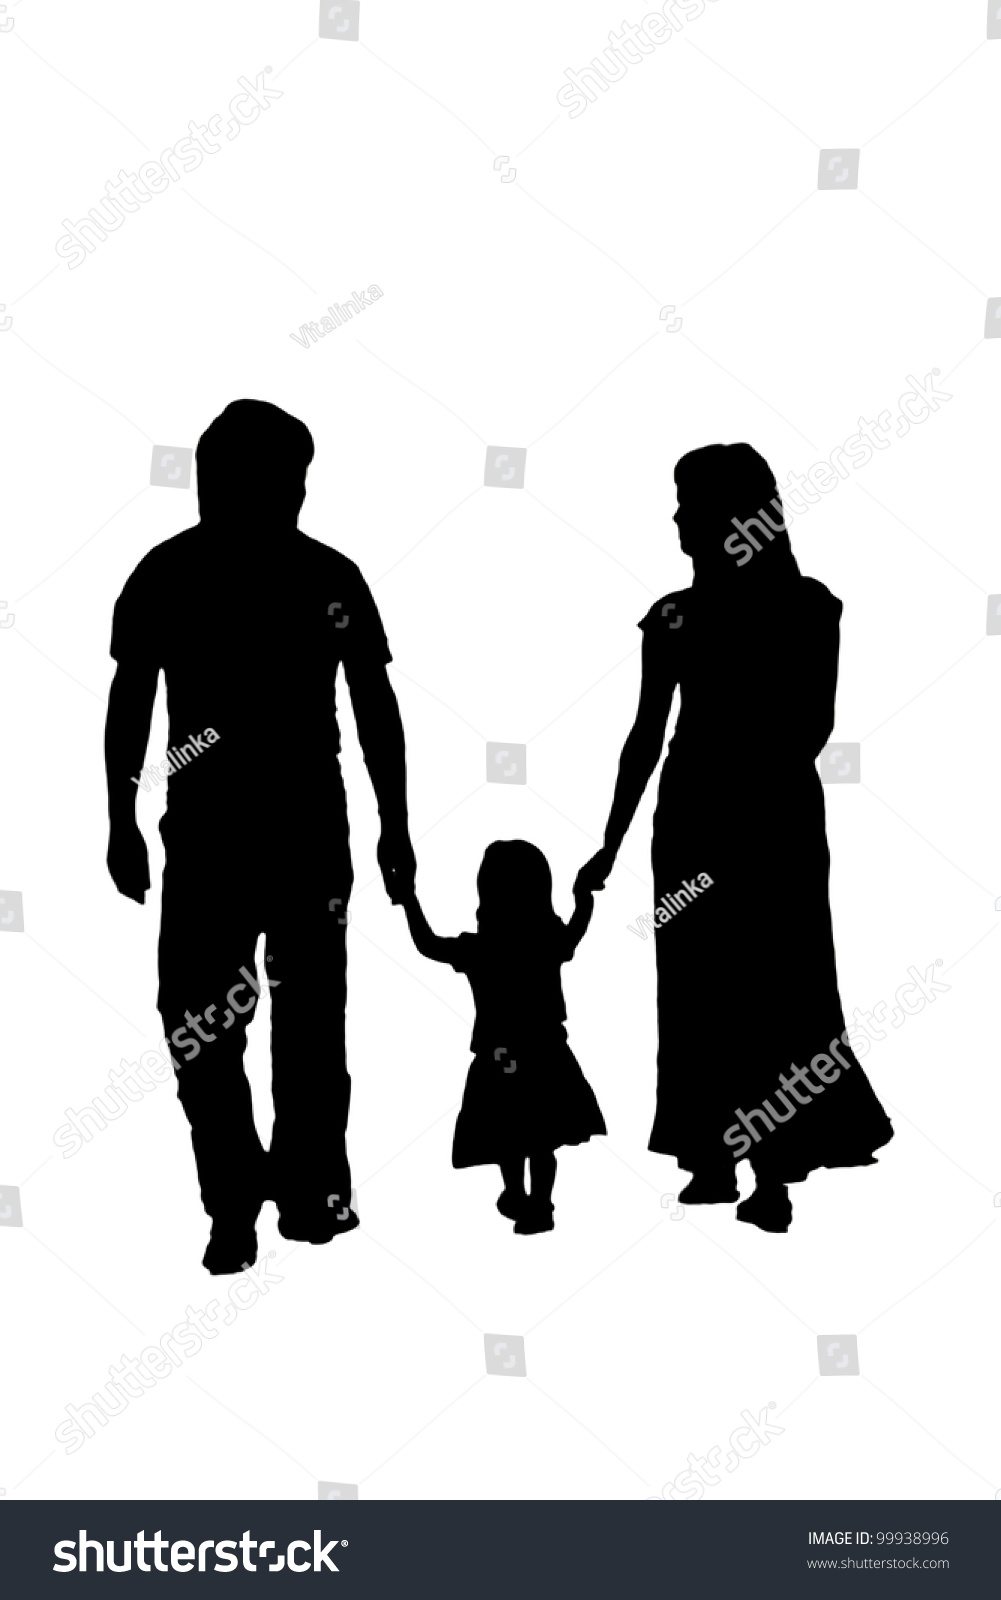 Silhouette Family Woman Man Baby Girl Loving People